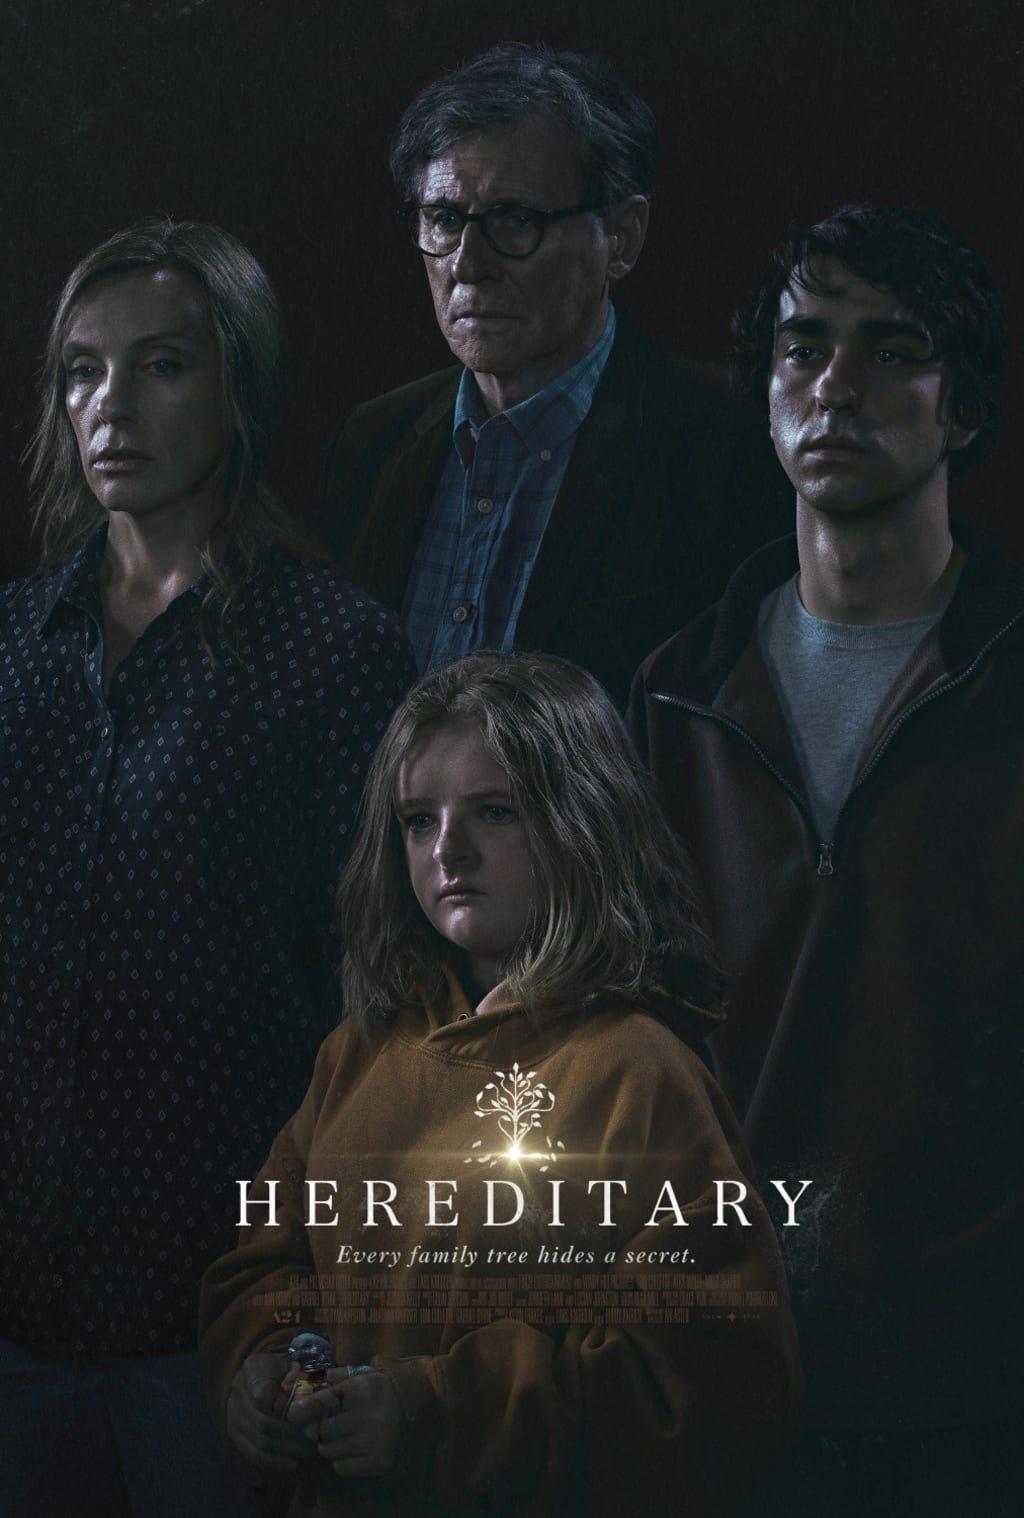 'Hereditary' - A Movie Review